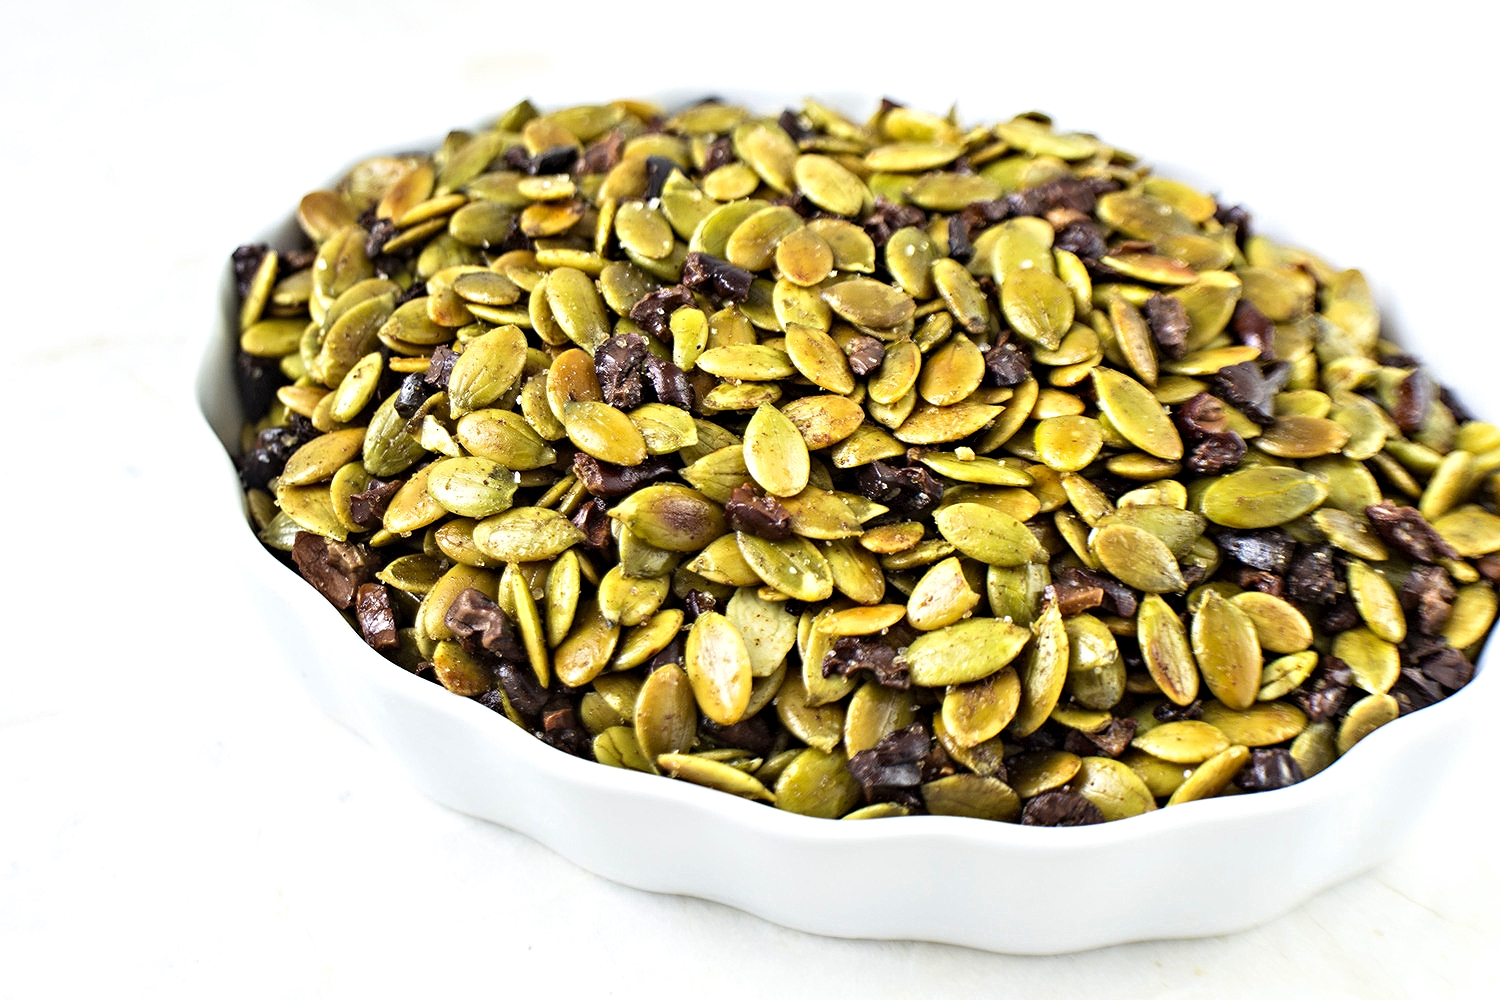 Sea Salted Cinnamon Pumpkin Seeds & Cacao Nibs